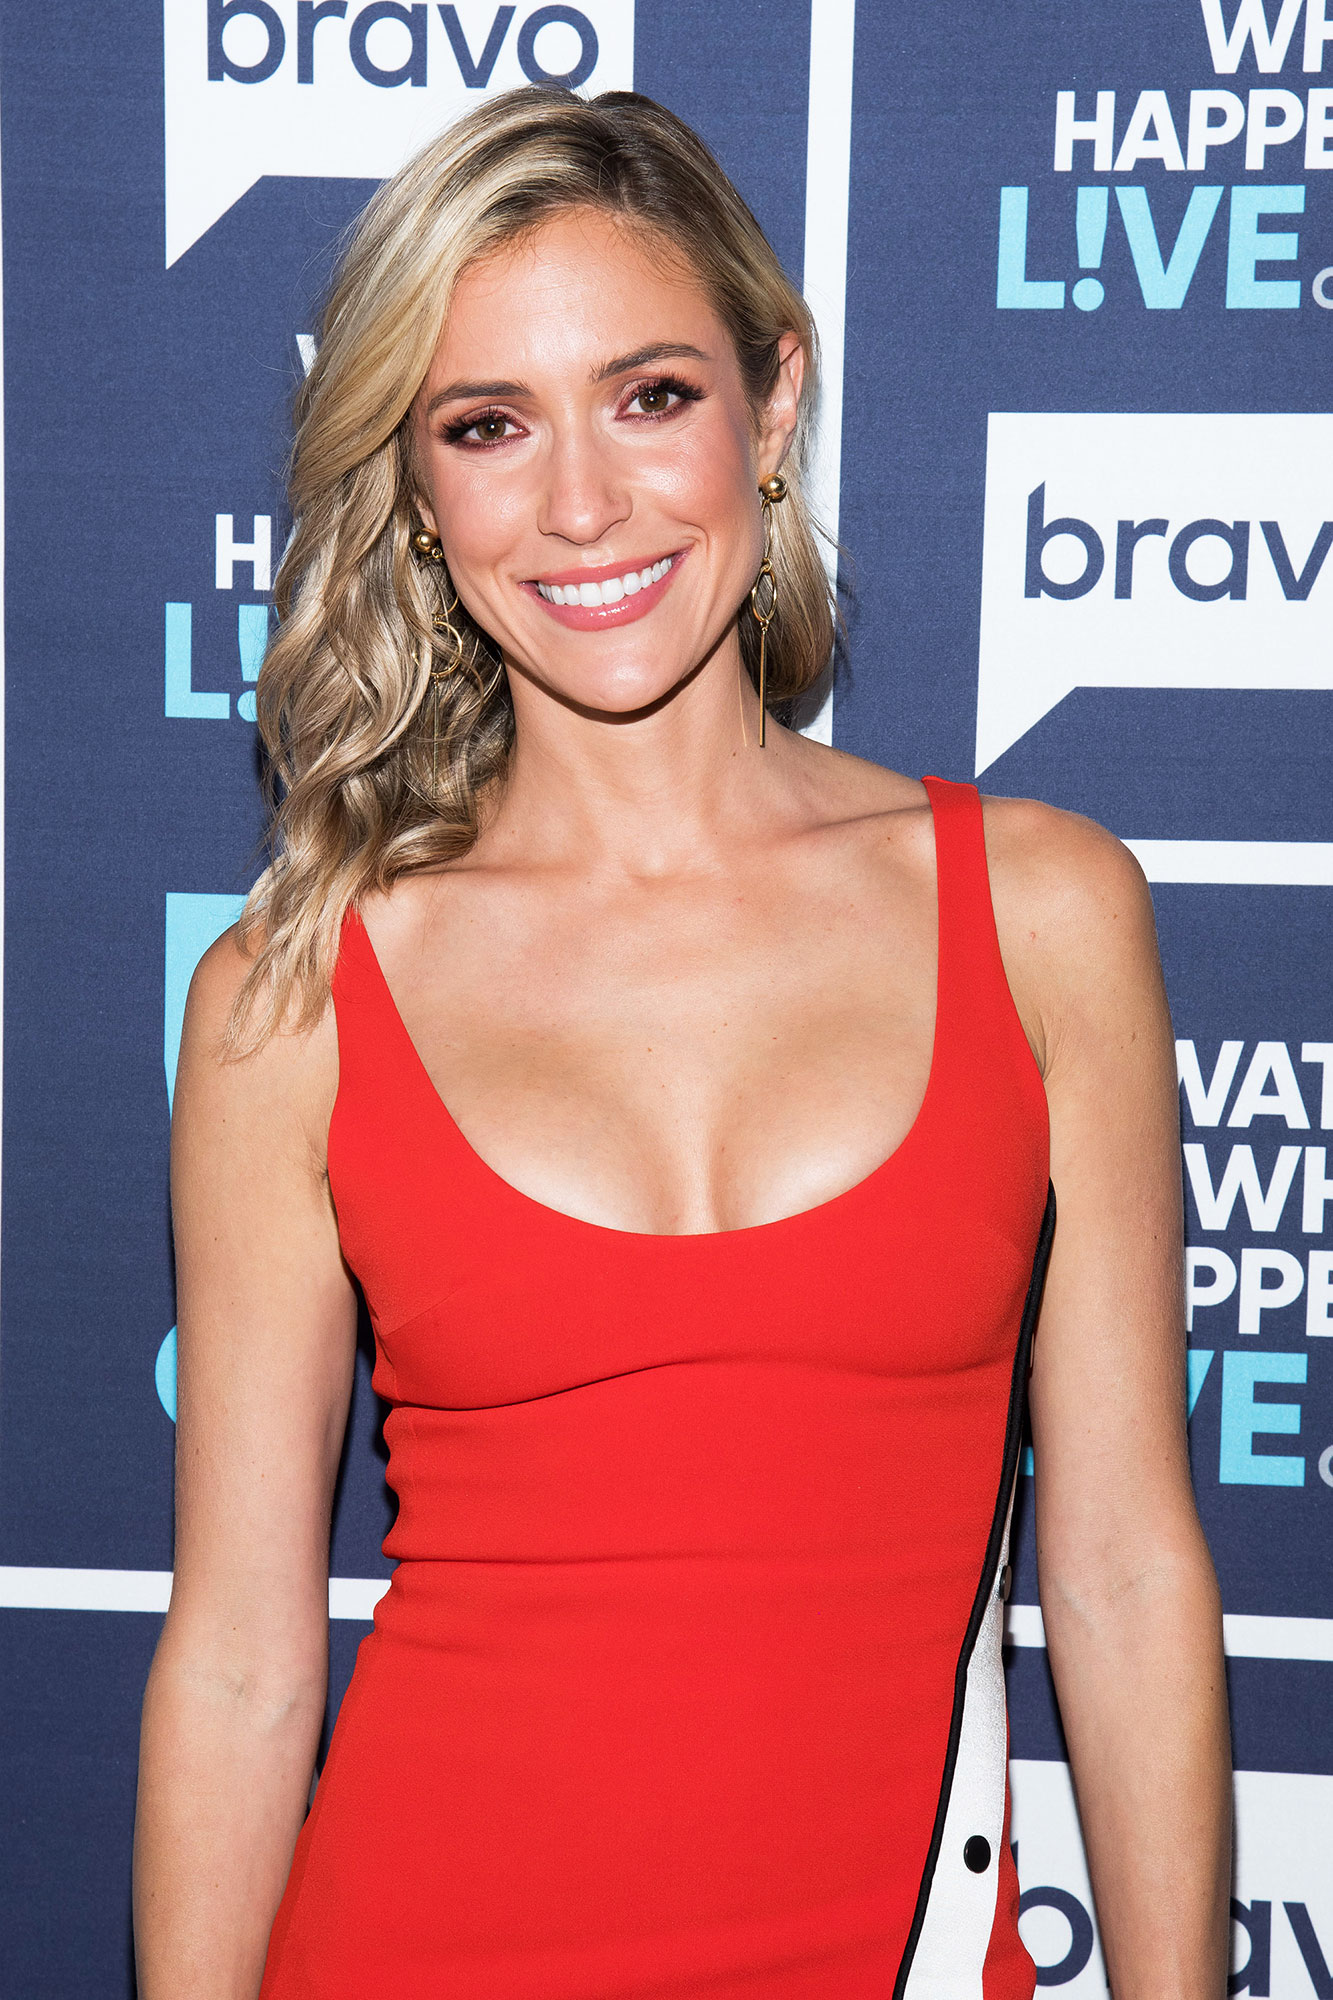 Kristin Cavallari new beginnings the hills - After infamously appearing for the final season and a half of The Hills , Kristin Cavallari will not return for the revival. Instead, she's heading up her own reality show on E!